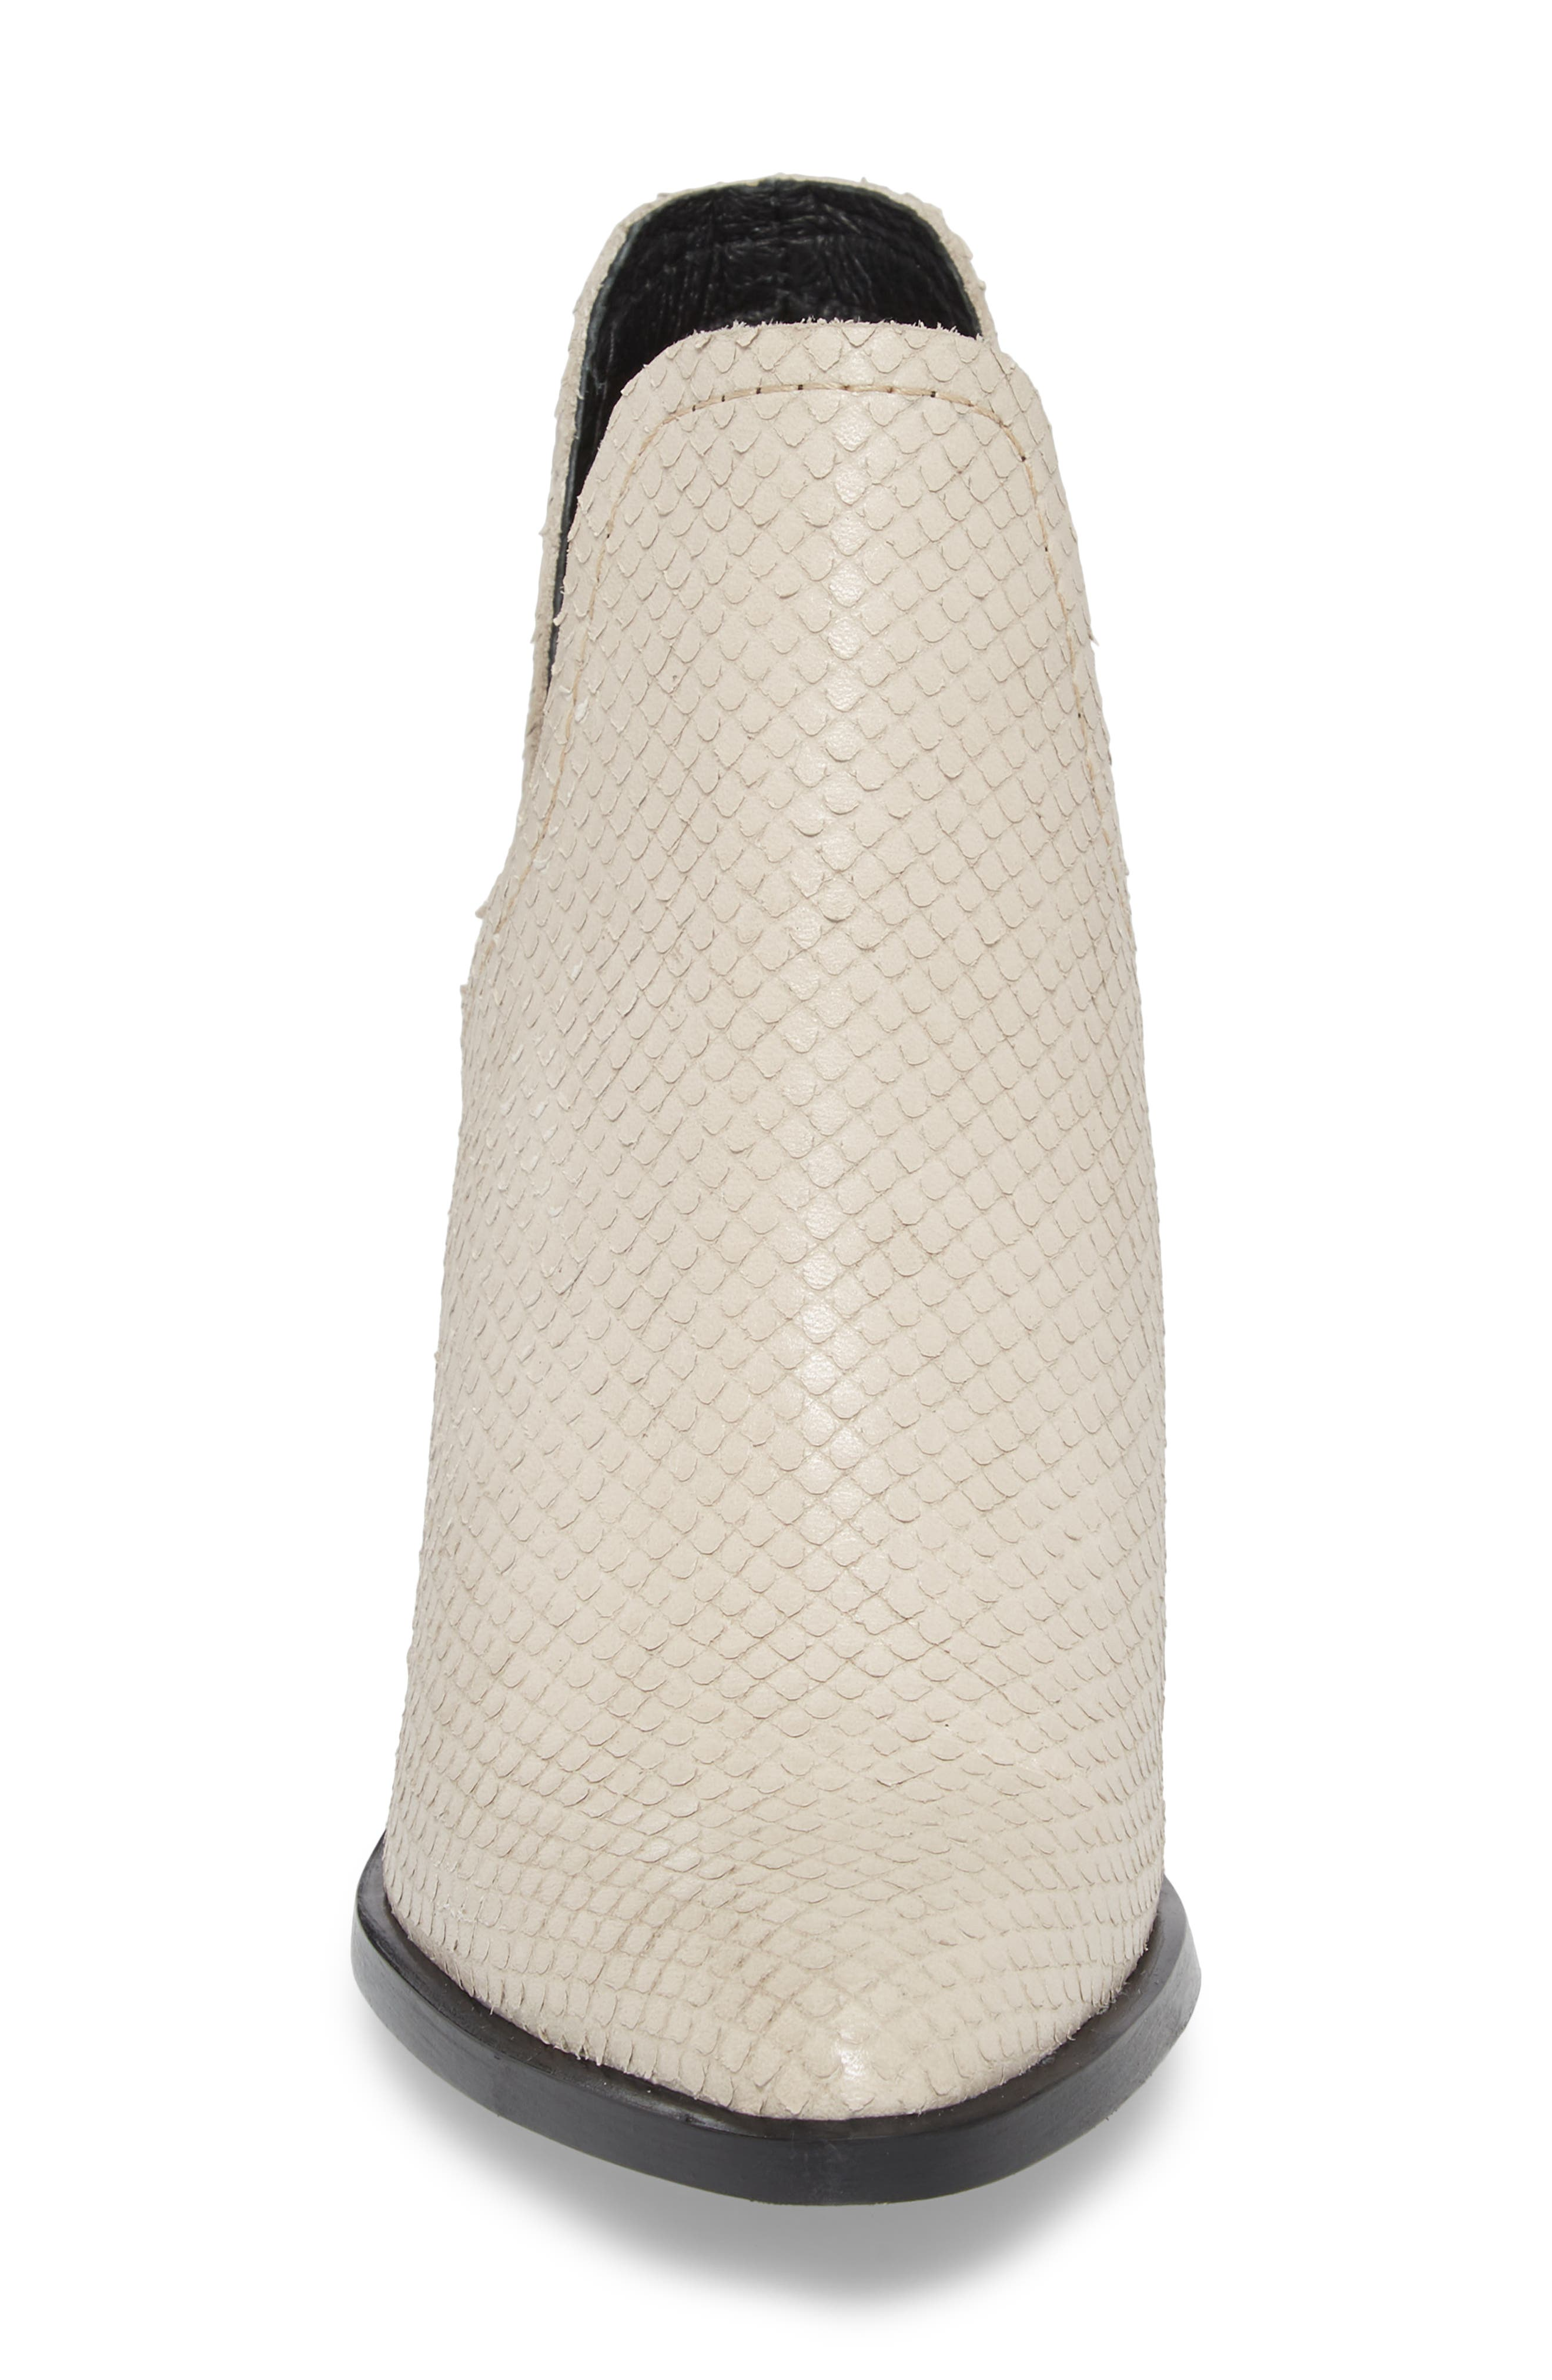 Petra Open Side Bootie,                             Alternate thumbnail 4, color,                             White Snake Print